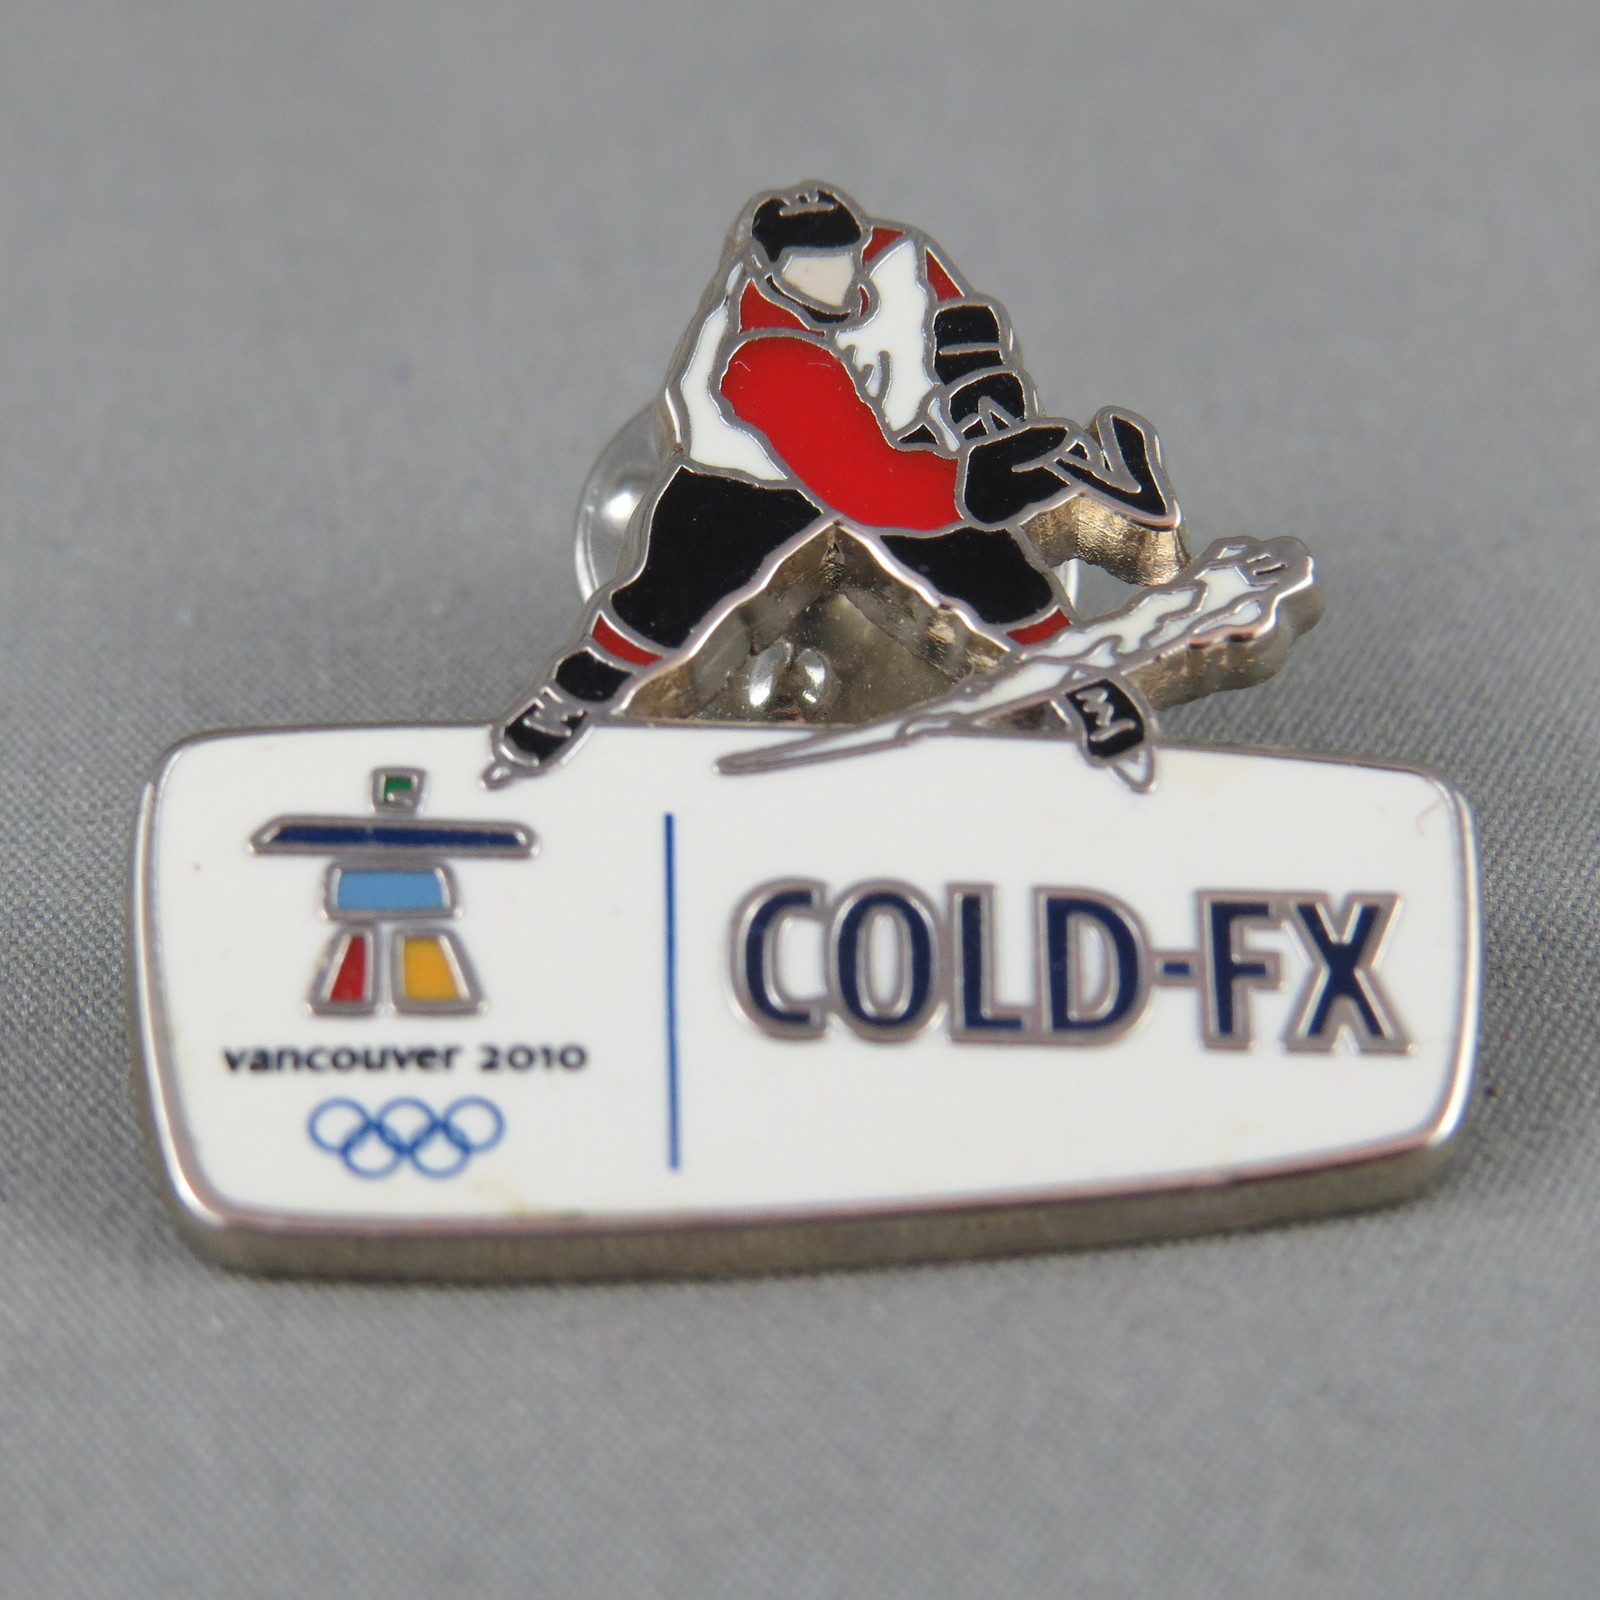 Primary image for 2010 Winter Olympic Games - Cold FX Sponsor Pin - Vancouver BC Canada